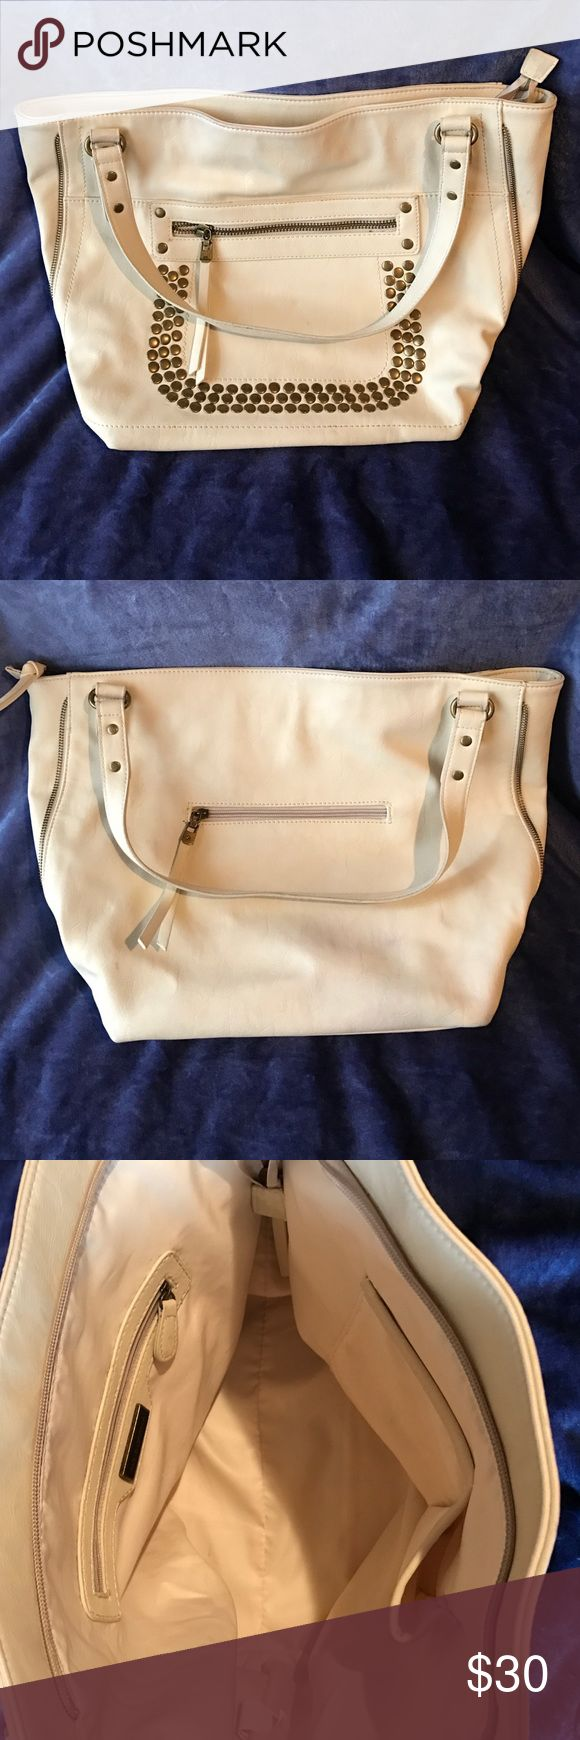 Big Buddha Handbag Cream Color Big Buddha Handbag cream in color. In good used condition slight discoloration on back of Handbag shown in picture. Handles in good shape. Zippers work great! Open to reasonable offers any questions feel free to ask! Thank you for looking! Big Buddha Bags Shoulder Bags